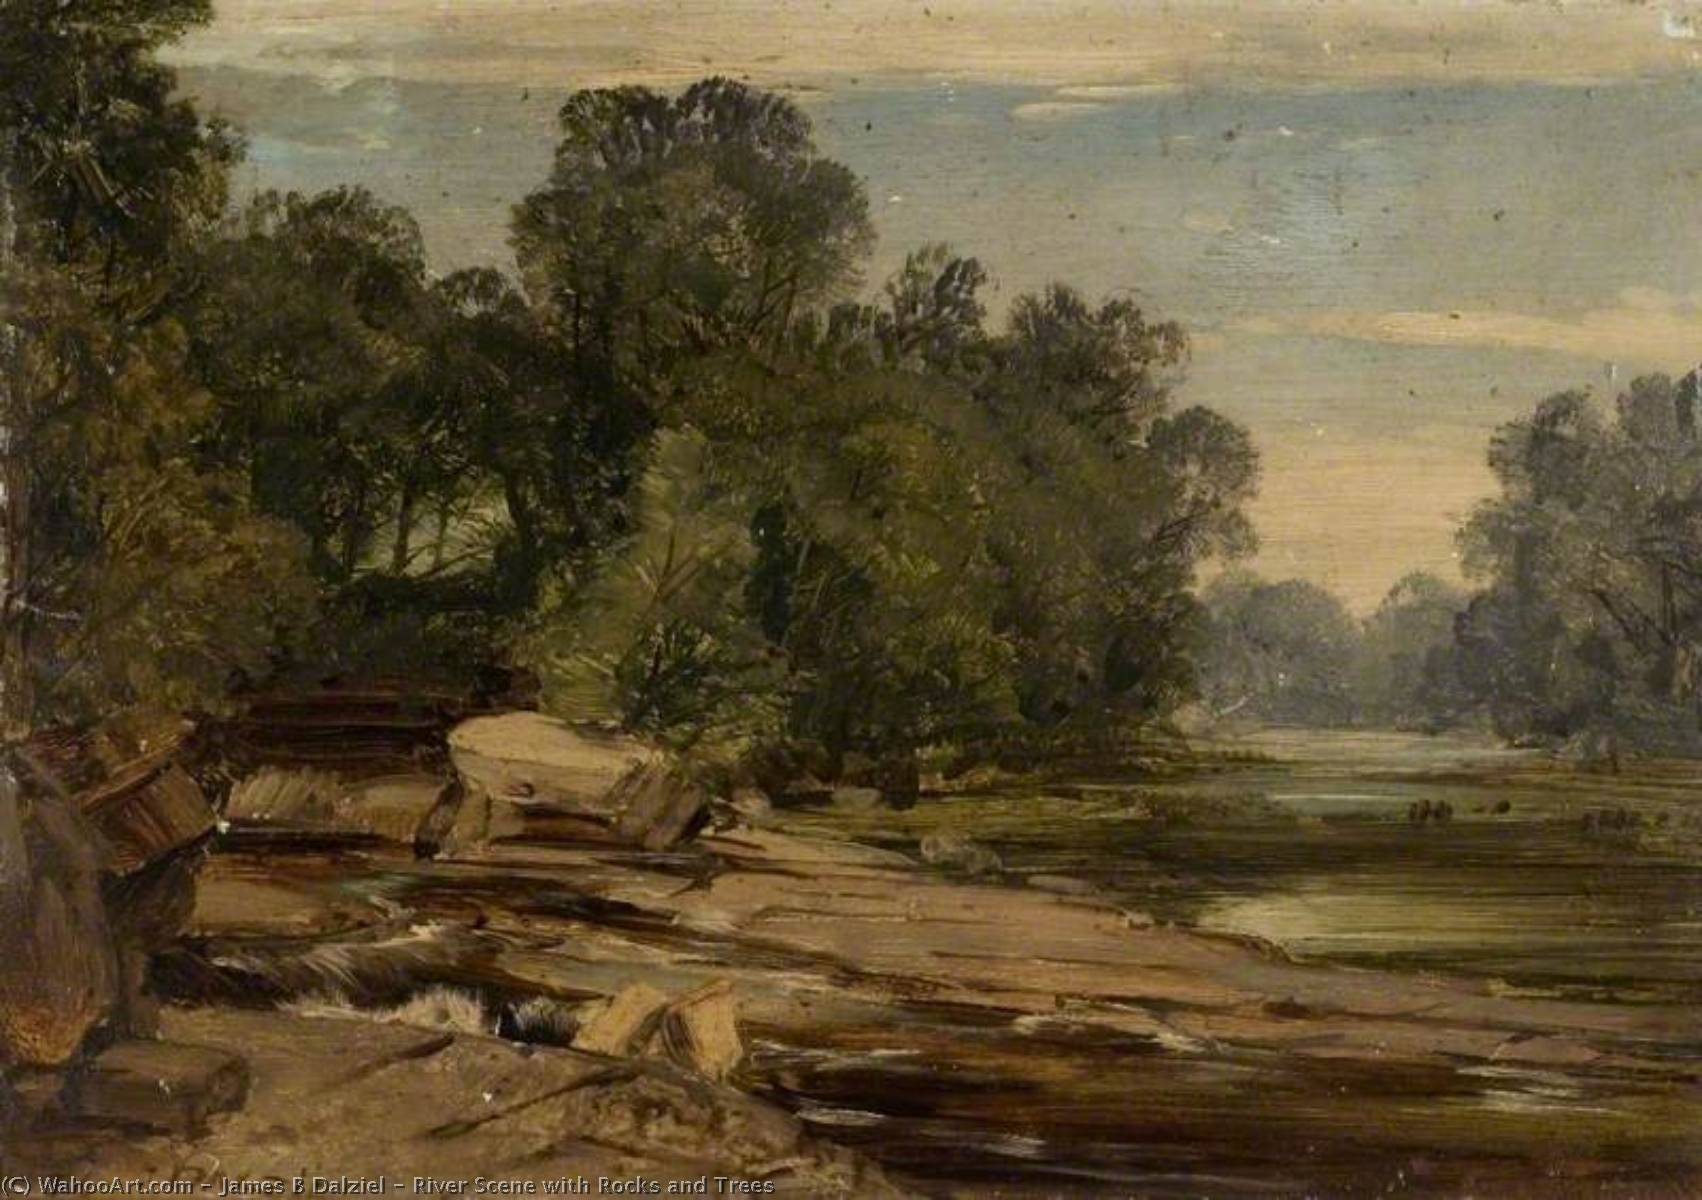 River Scene with Rocks and Trees, Oil by James B Dalziel